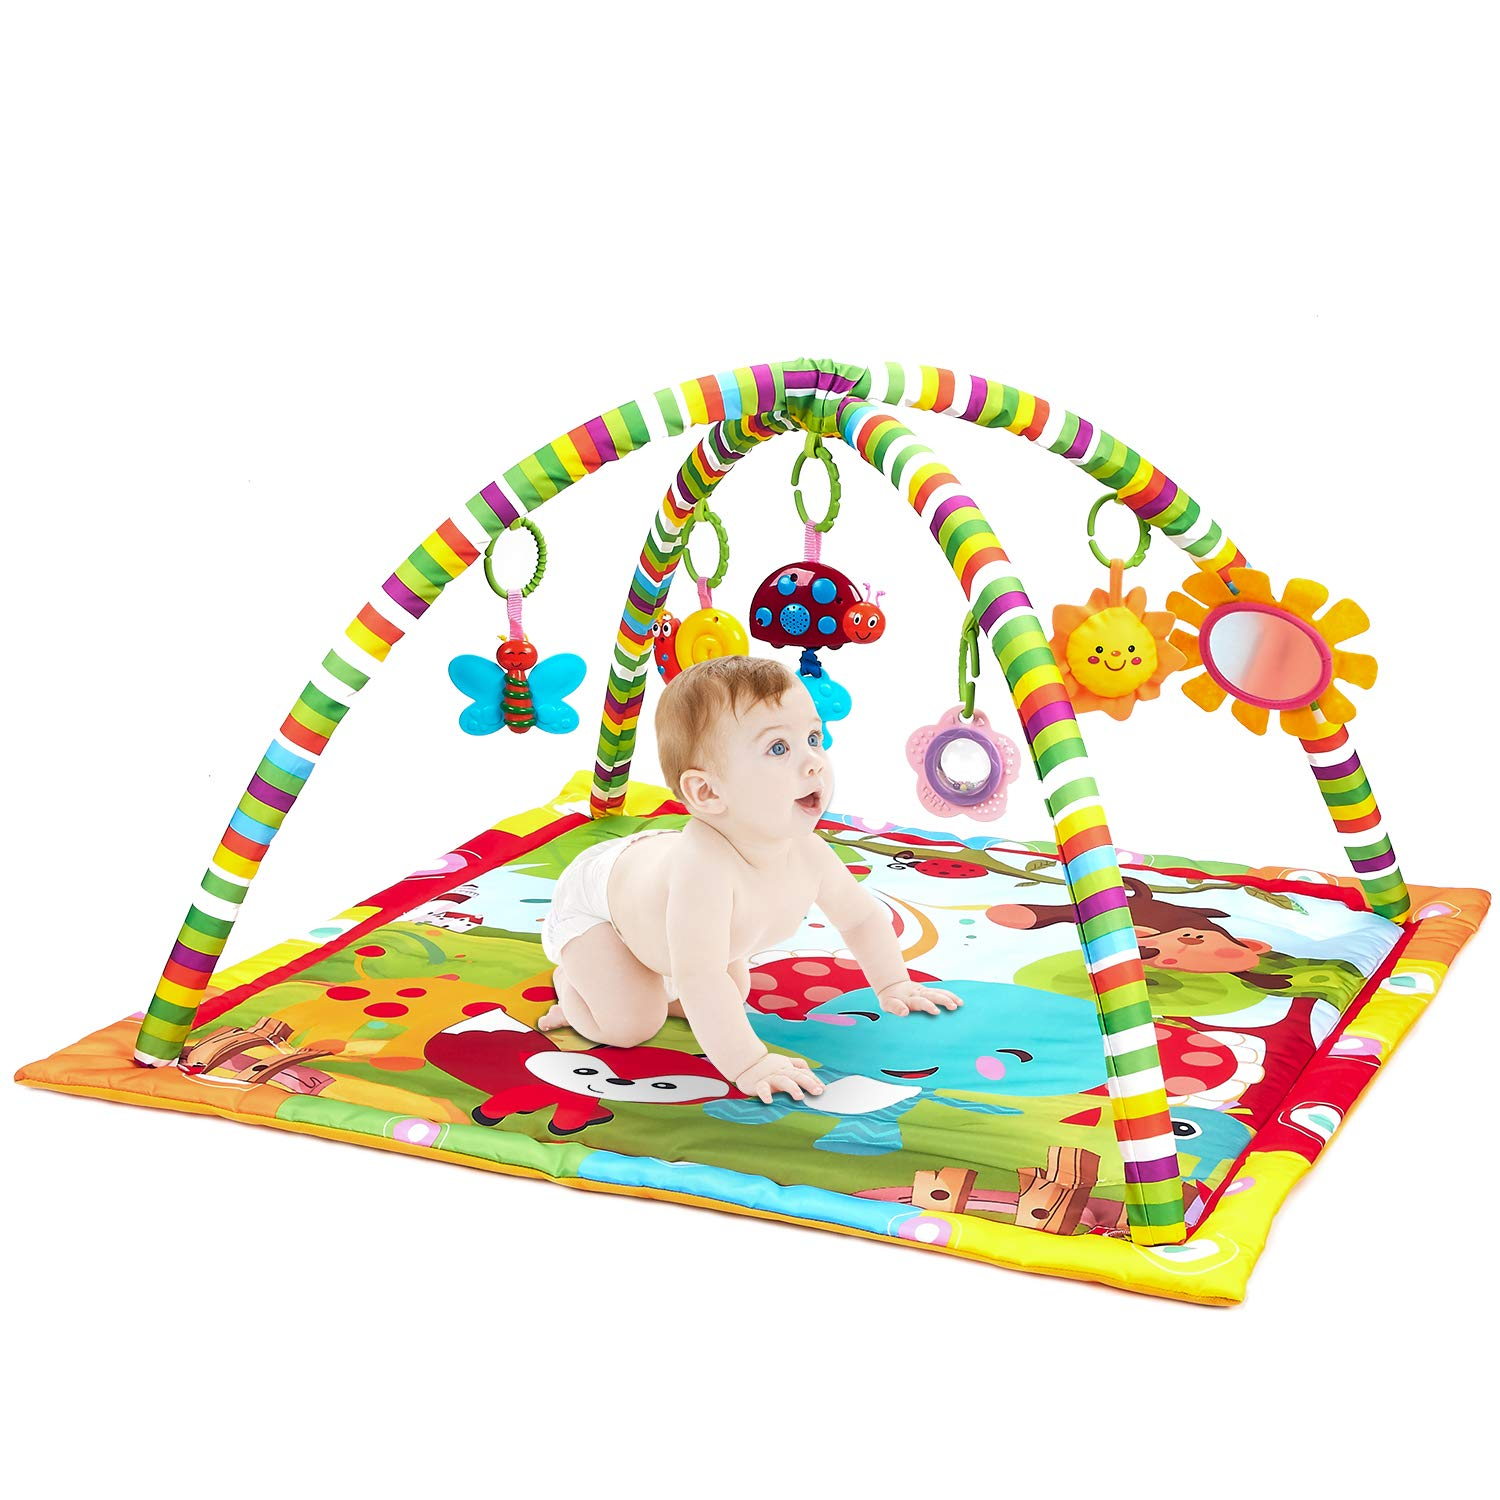 New Born Baby Playmat, Play Gym, Musical Activity Gym,Soft Toy, Fun Animals,Music,Textures,Rattle,Teethers, Mirror, Discovery Carpet for Infants Toddlers Newborn Kick and Playmat 0-36 Months Tech Traders